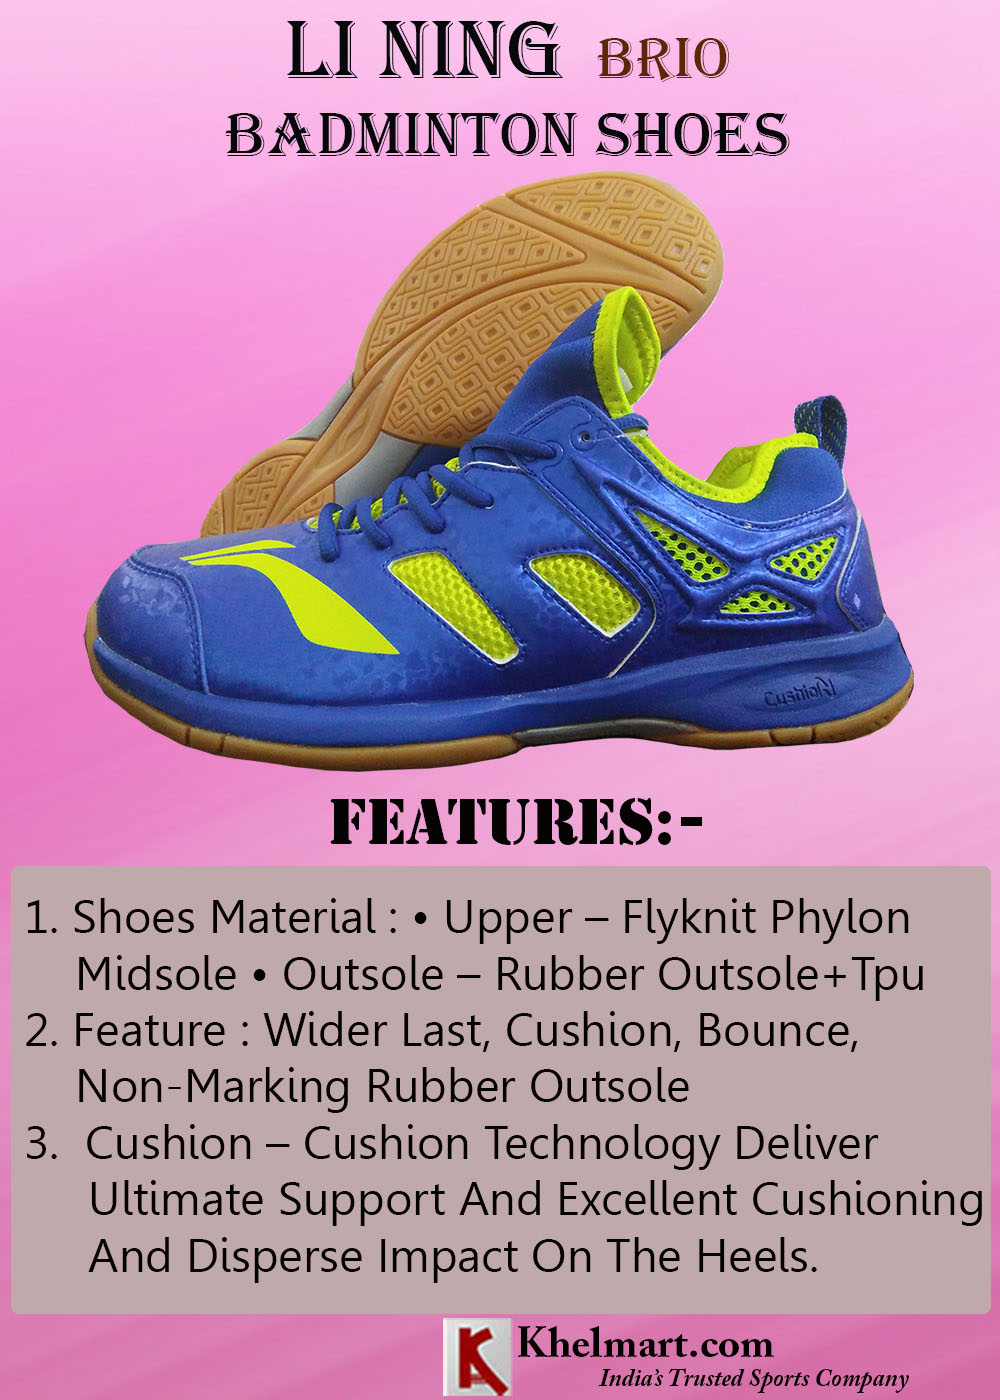 LI NING Brio Badminton Shoes